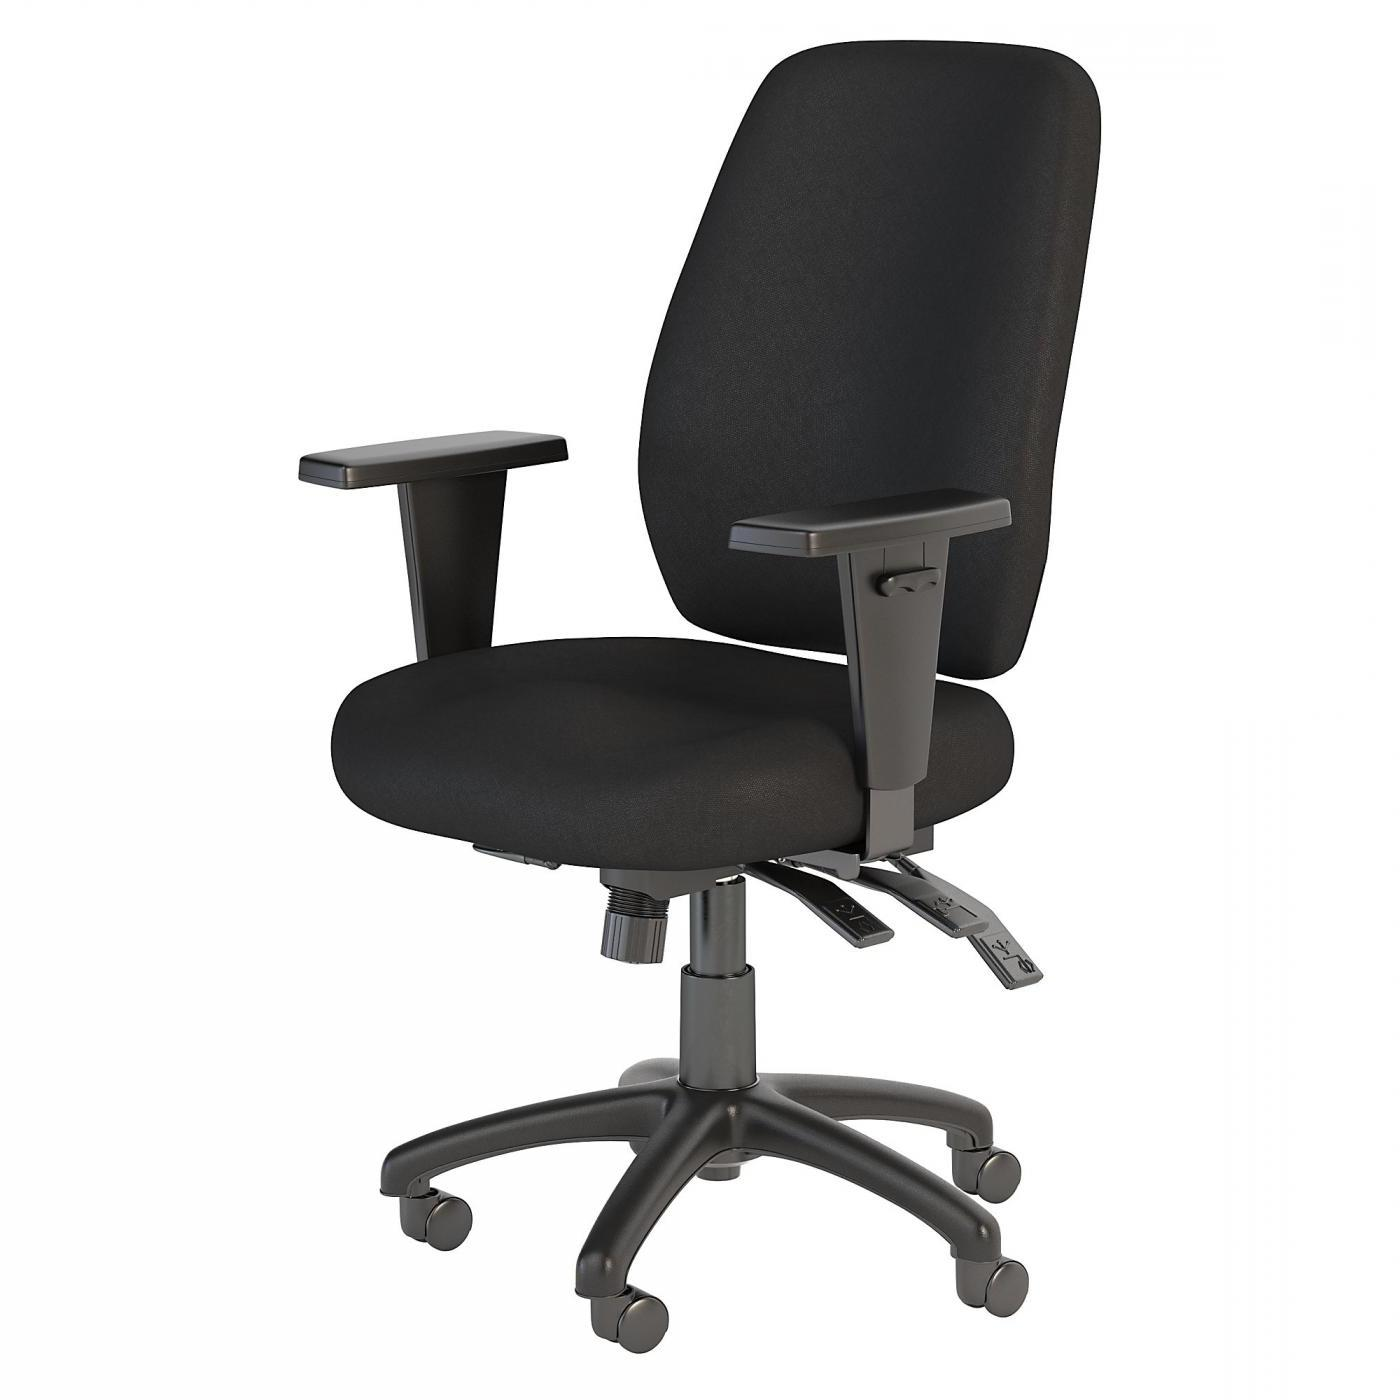 BUSH BUSINESS FURNITURE PROSPER HIGH BACK MULTIFUNCTION OFFICE CHAIR. FREE SHIPPING.  SALE DEDUCT 10% MORE ENTER '10percent' IN COUPON CODE BOX WHILE CHECKING OUT.